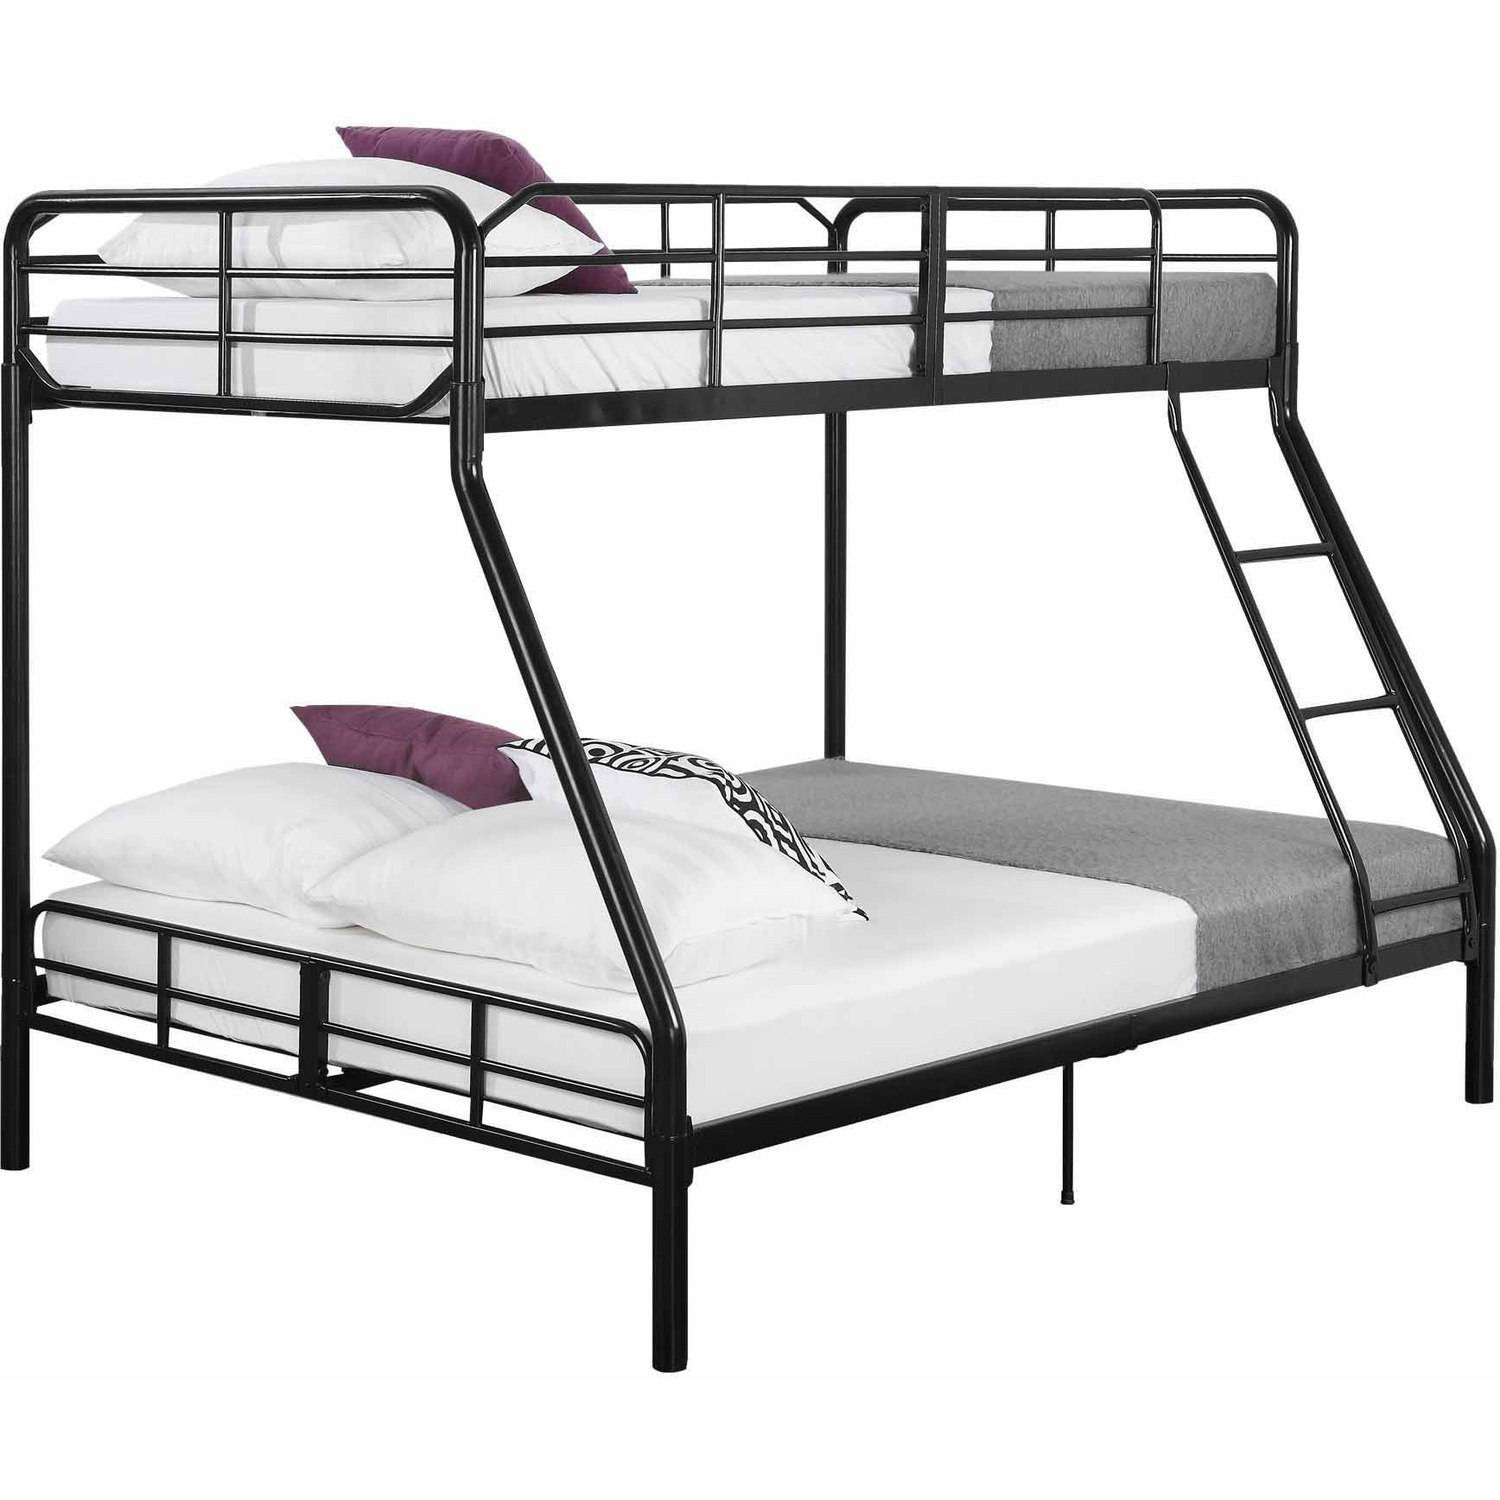 Bunk Bed Dimensions Twin Over Full Metal Bunk Bed W Ladder Kids Bedroom